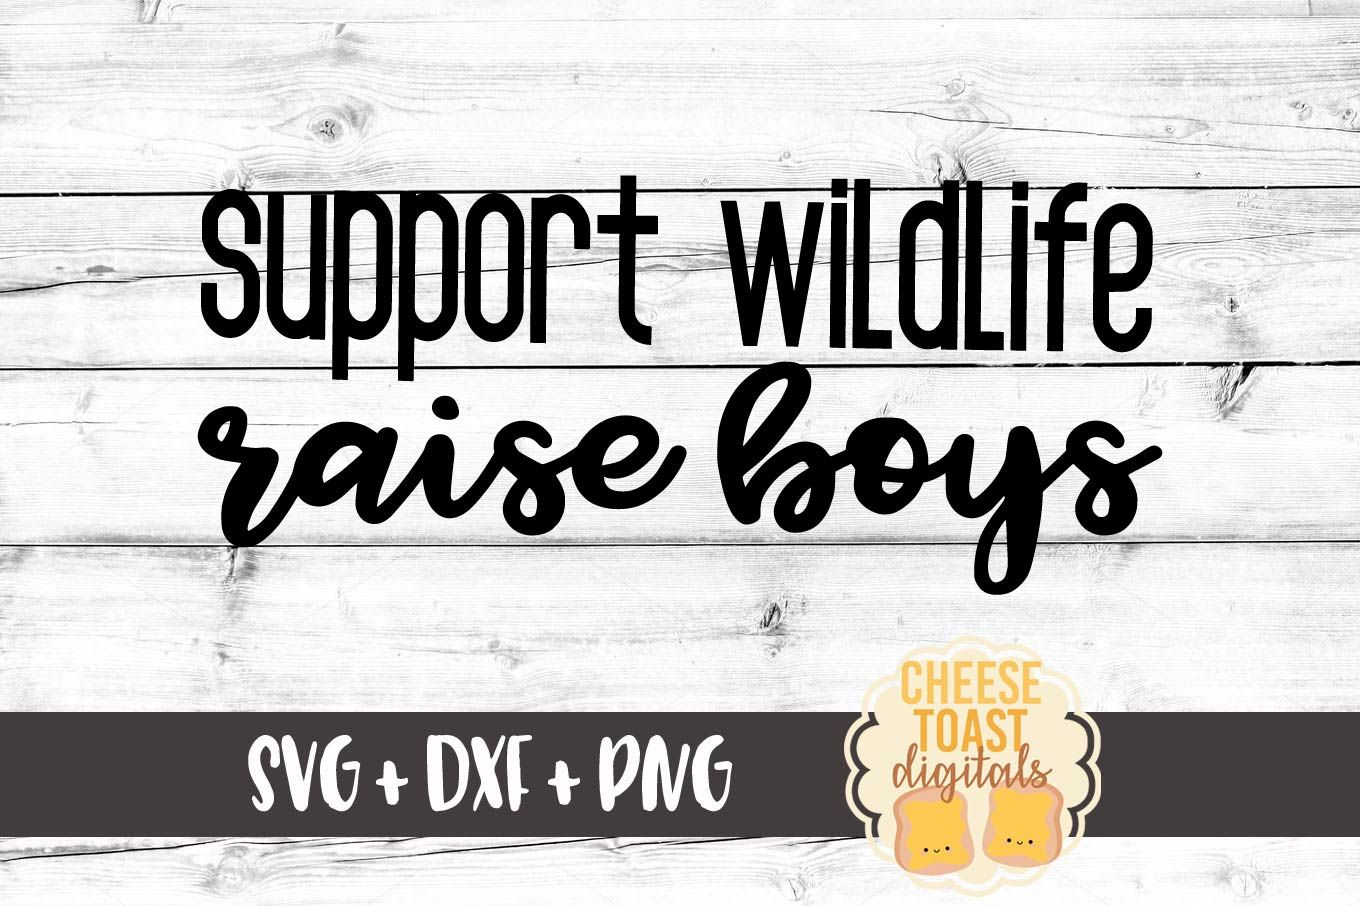 Support Wildlife Raise Boys SoFontsy Chaos coordinator